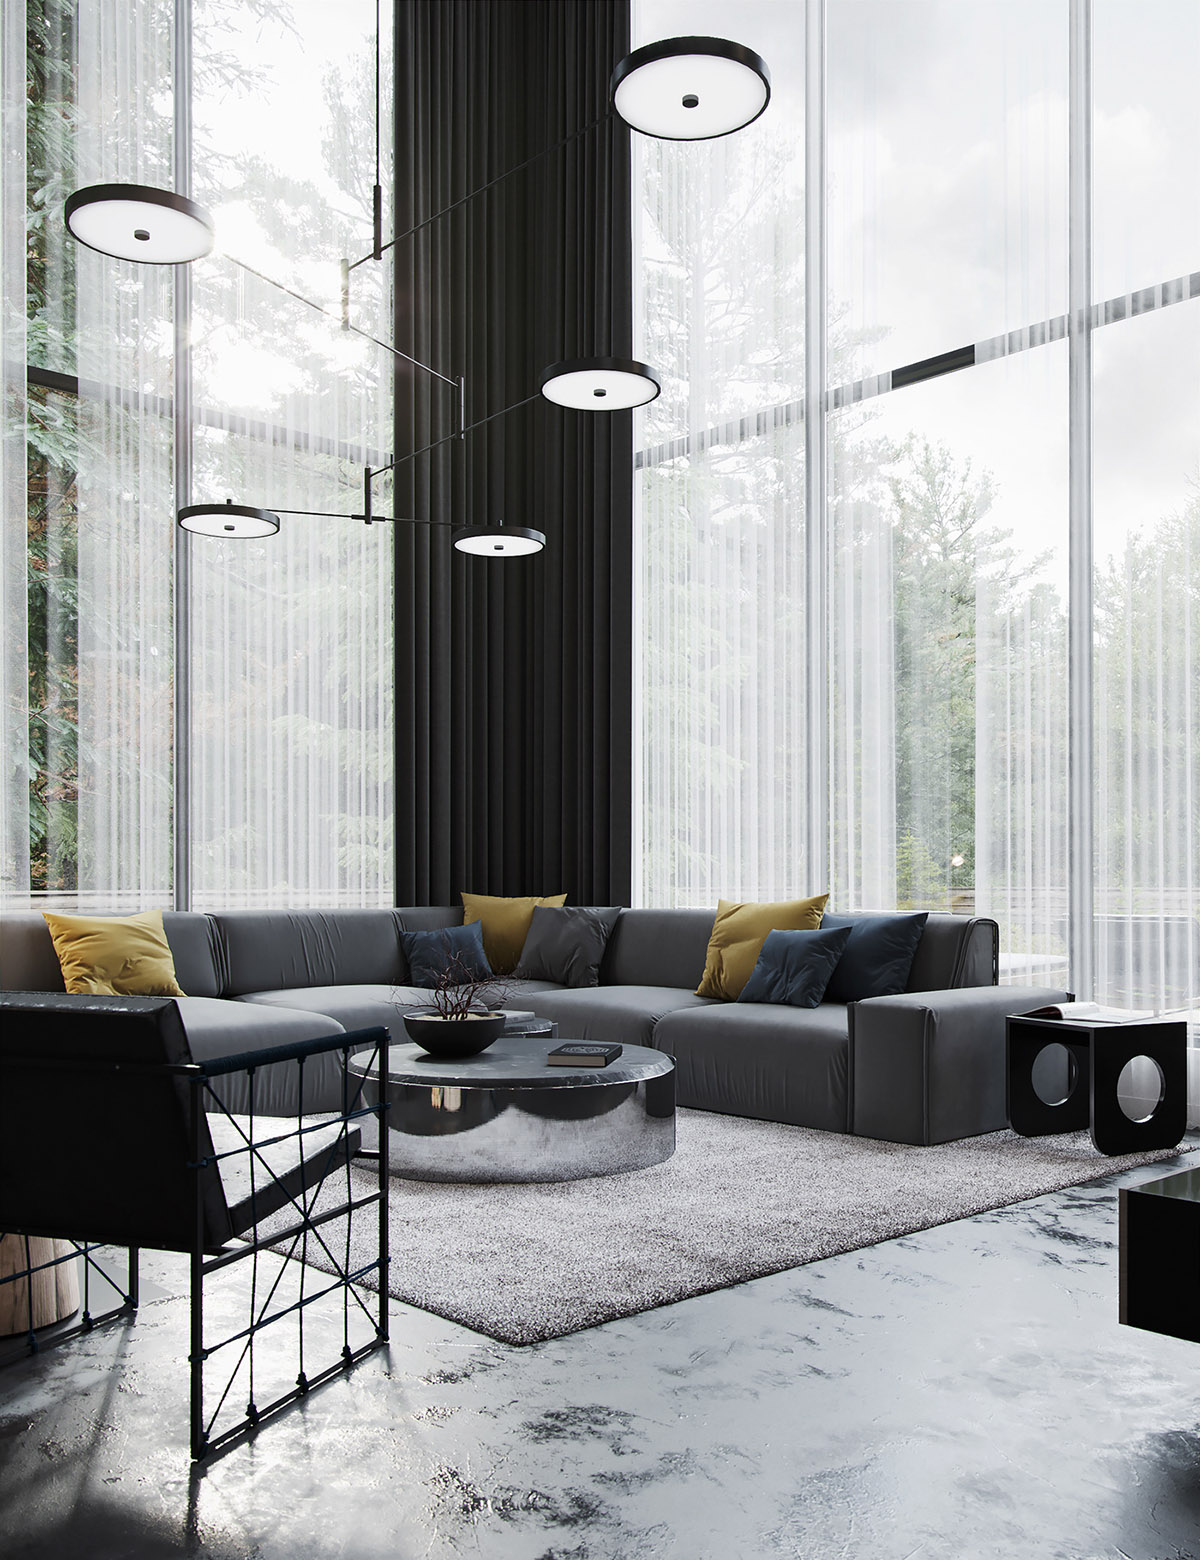 Black Decor With Colourful Accents images 2